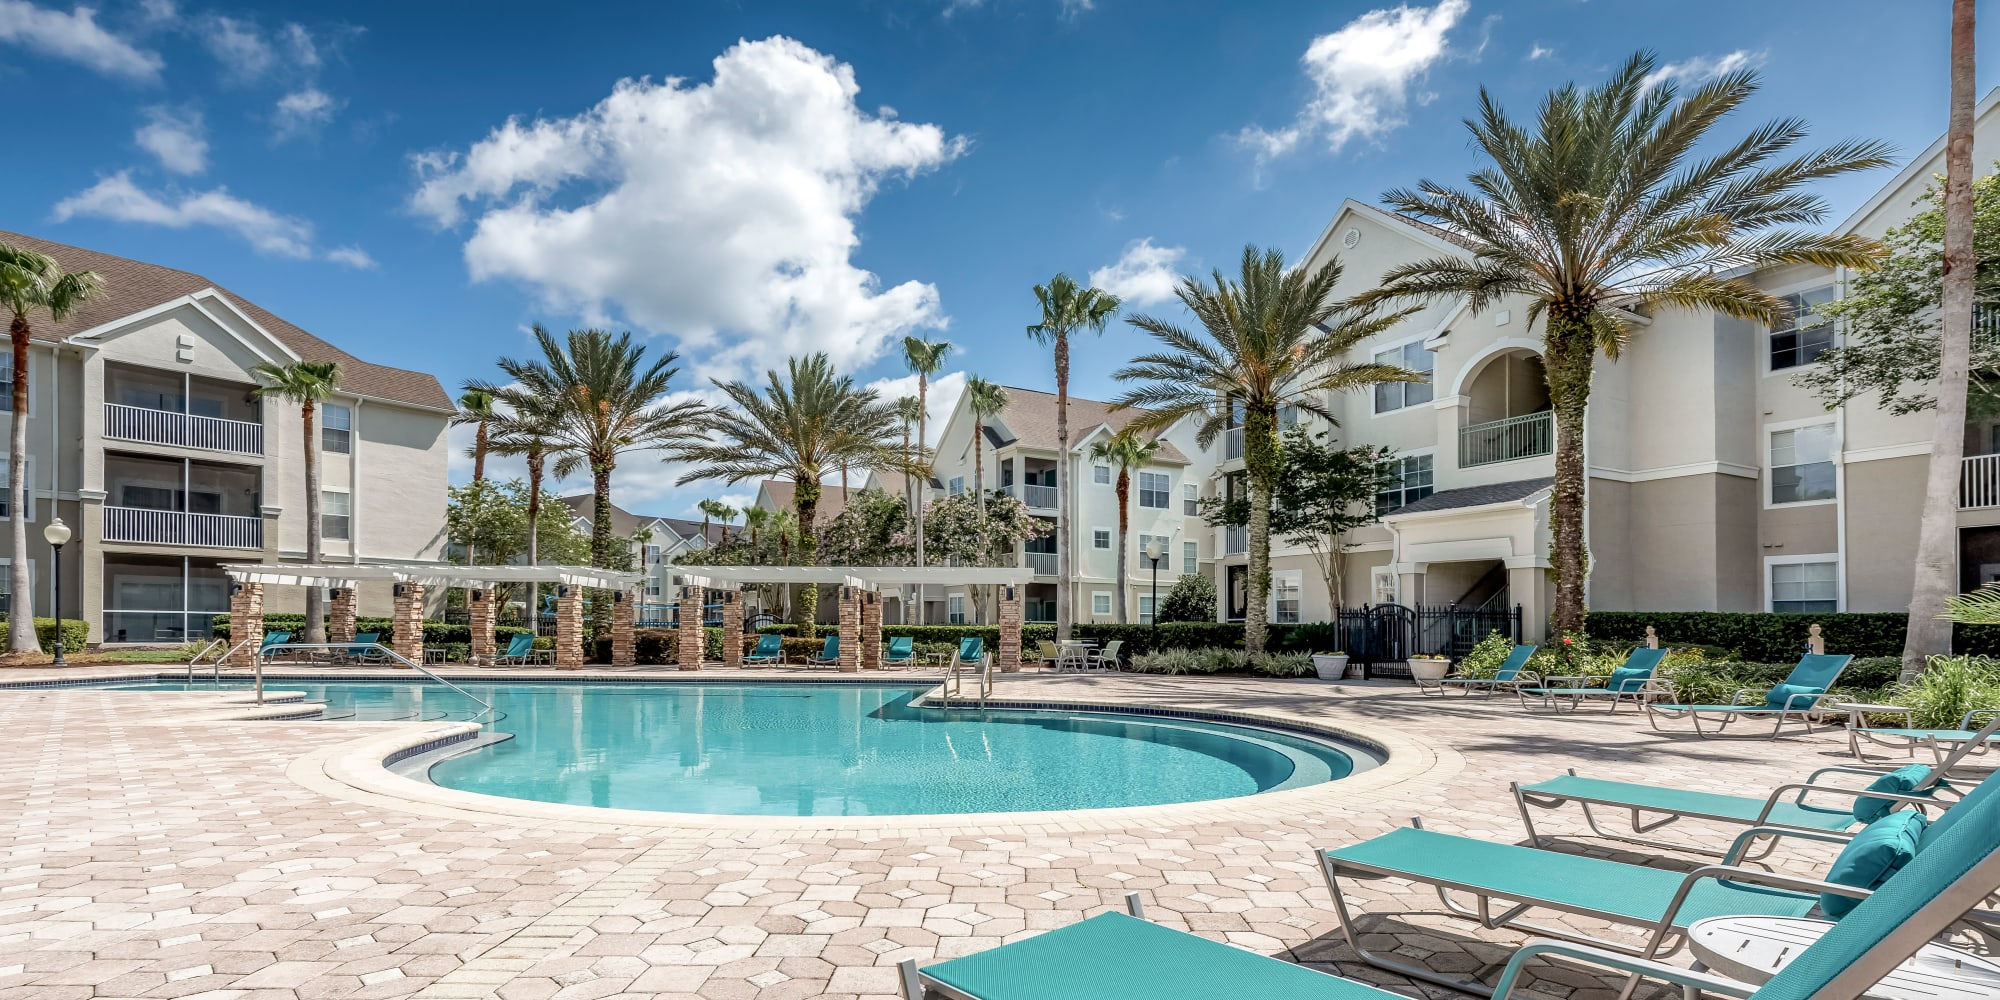 Amenities at Eddison at Deerwood Park in Jacksonville, Florida